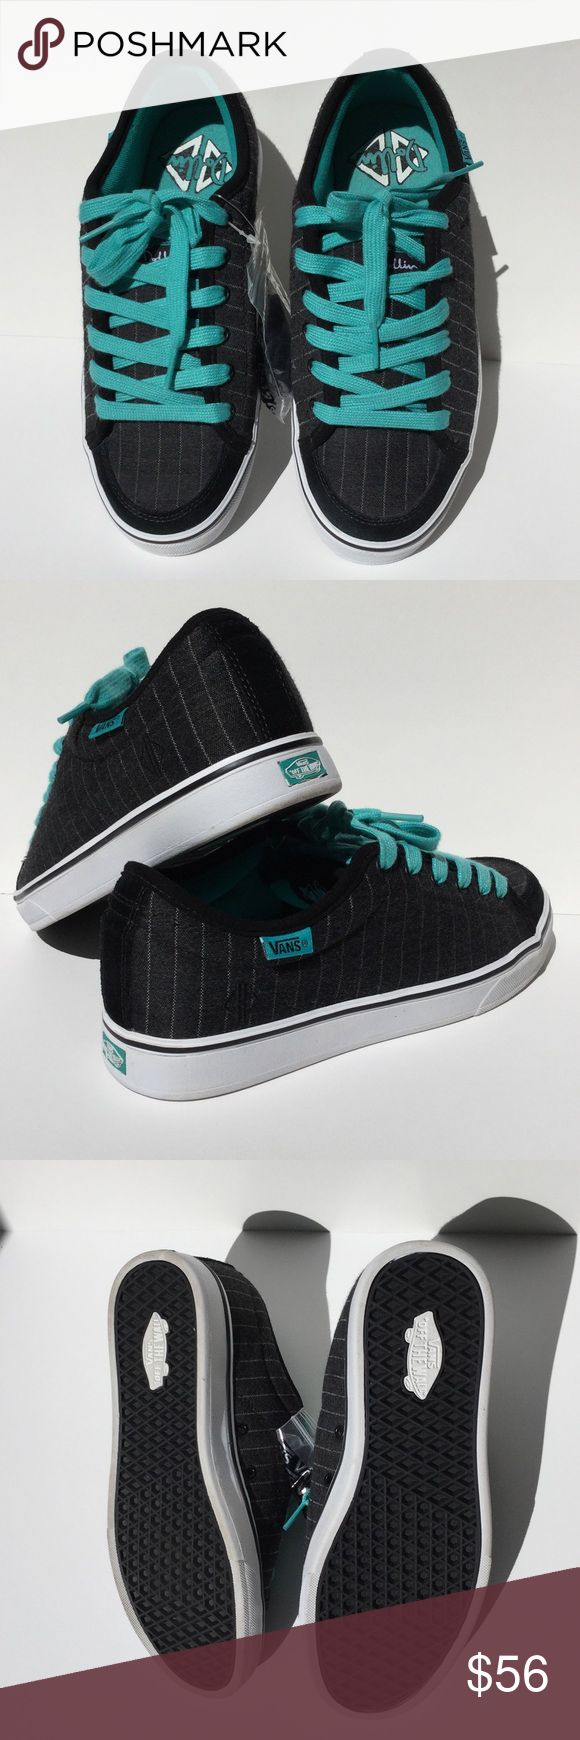 Vans Dollin Off the Wall Skate Shoes Teal  Vans Dollin Off the Wall Teal, Grey, and Black skate shoes. Brand new with extra set of black laces still attached in original packaging. I do not have the box. Vans Shoes